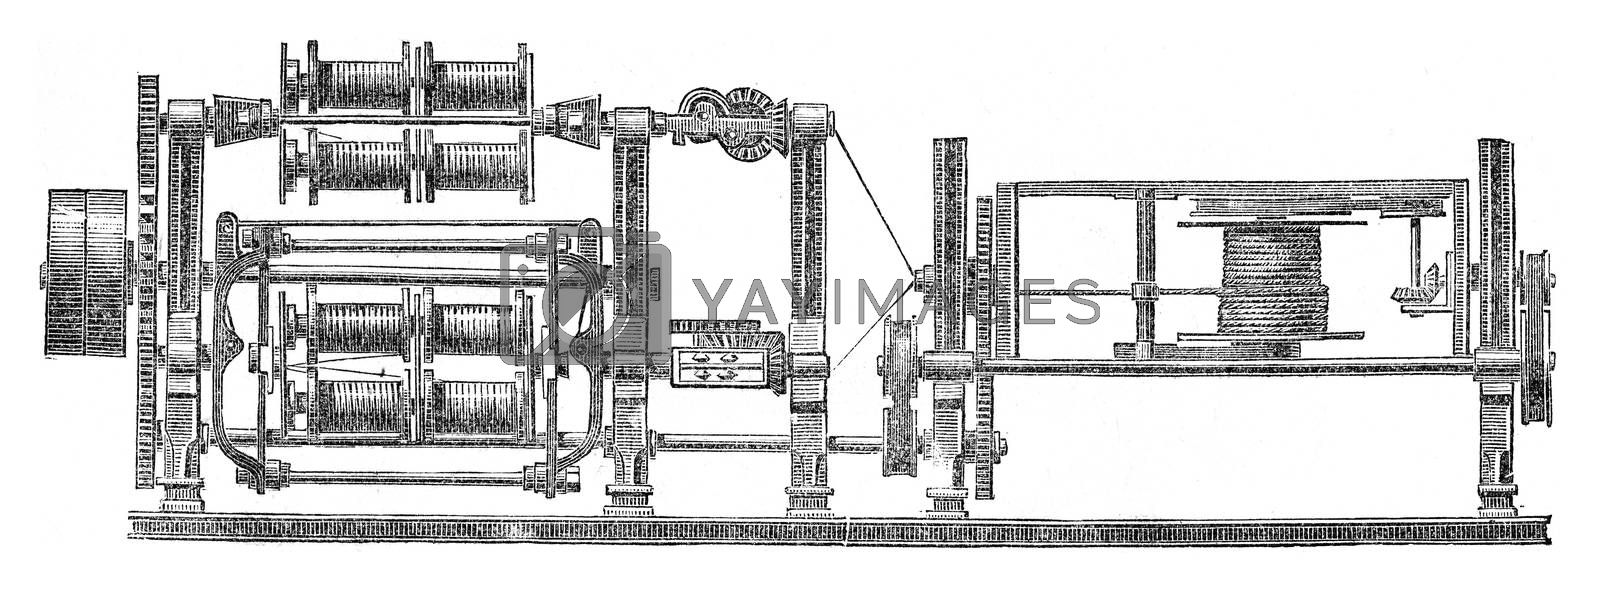 Machine manufacture the cables in one go, vintage engraved illustration. Industrial encyclopedia E.-O. Lami - 1875.